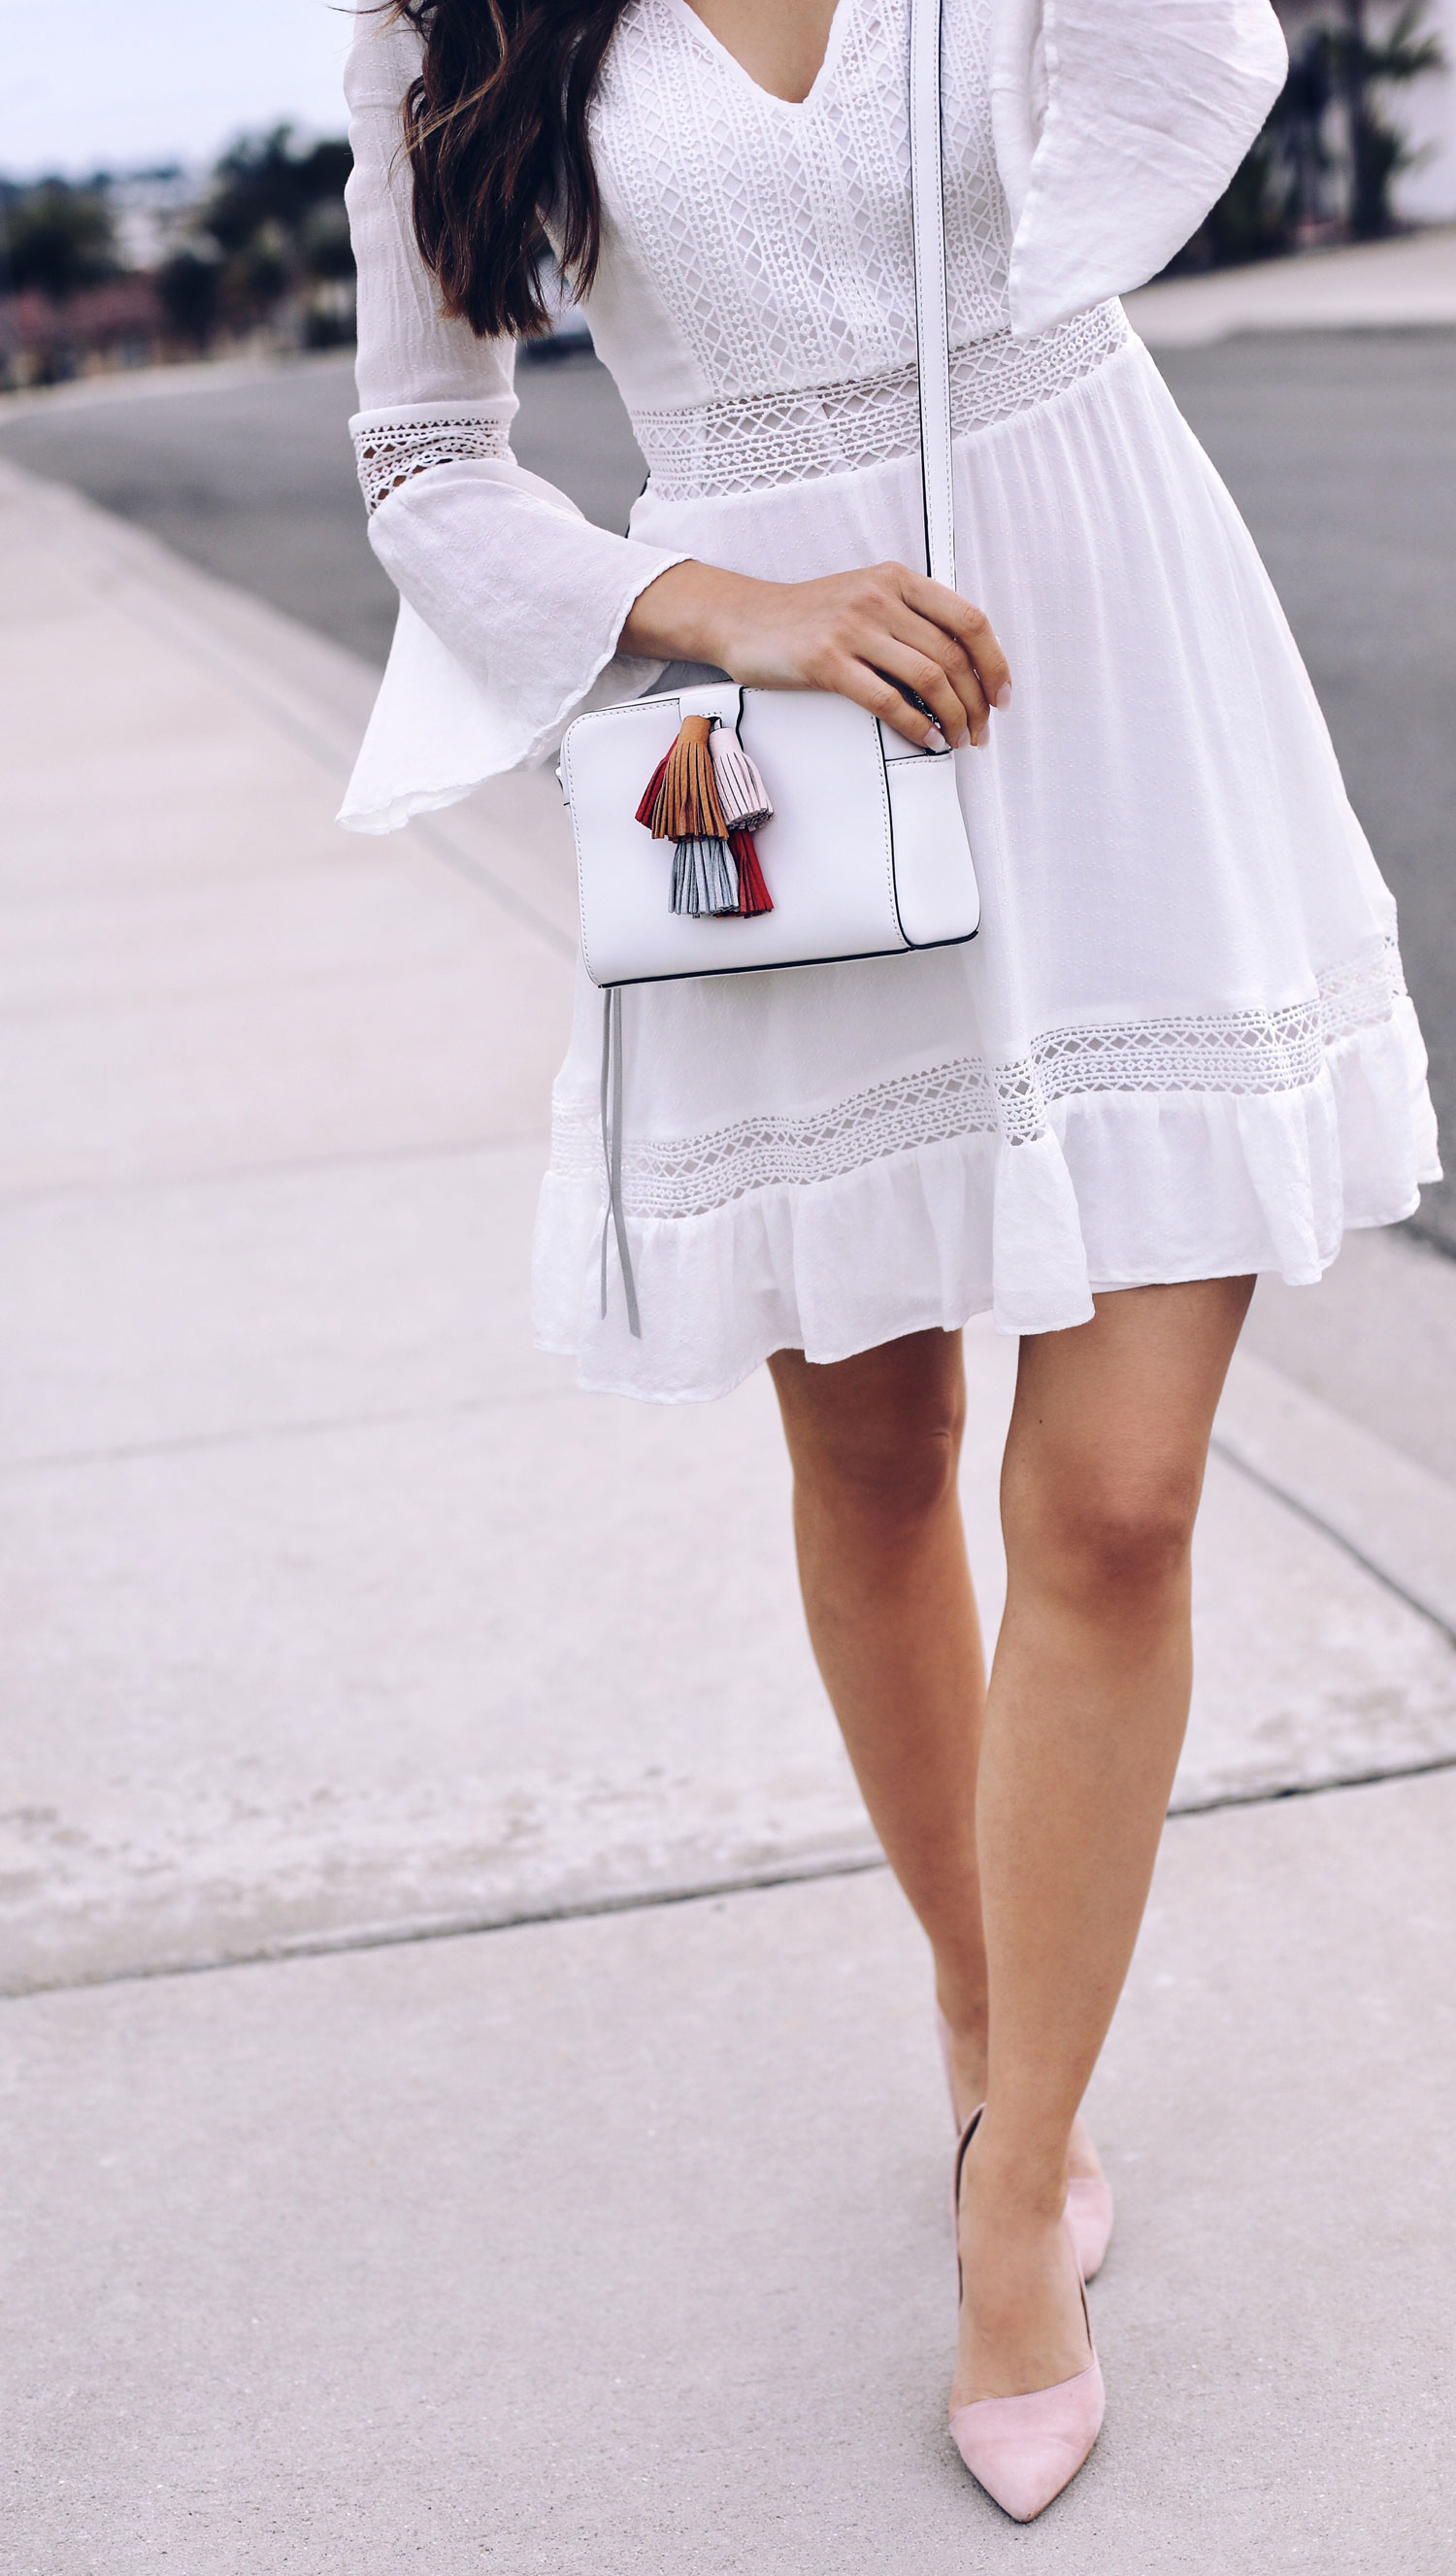 Fashion and lifestyle blogger Adelina Perrin of The Charming Olive wearing Rebecca Minkoff Dress, Bag and bandana